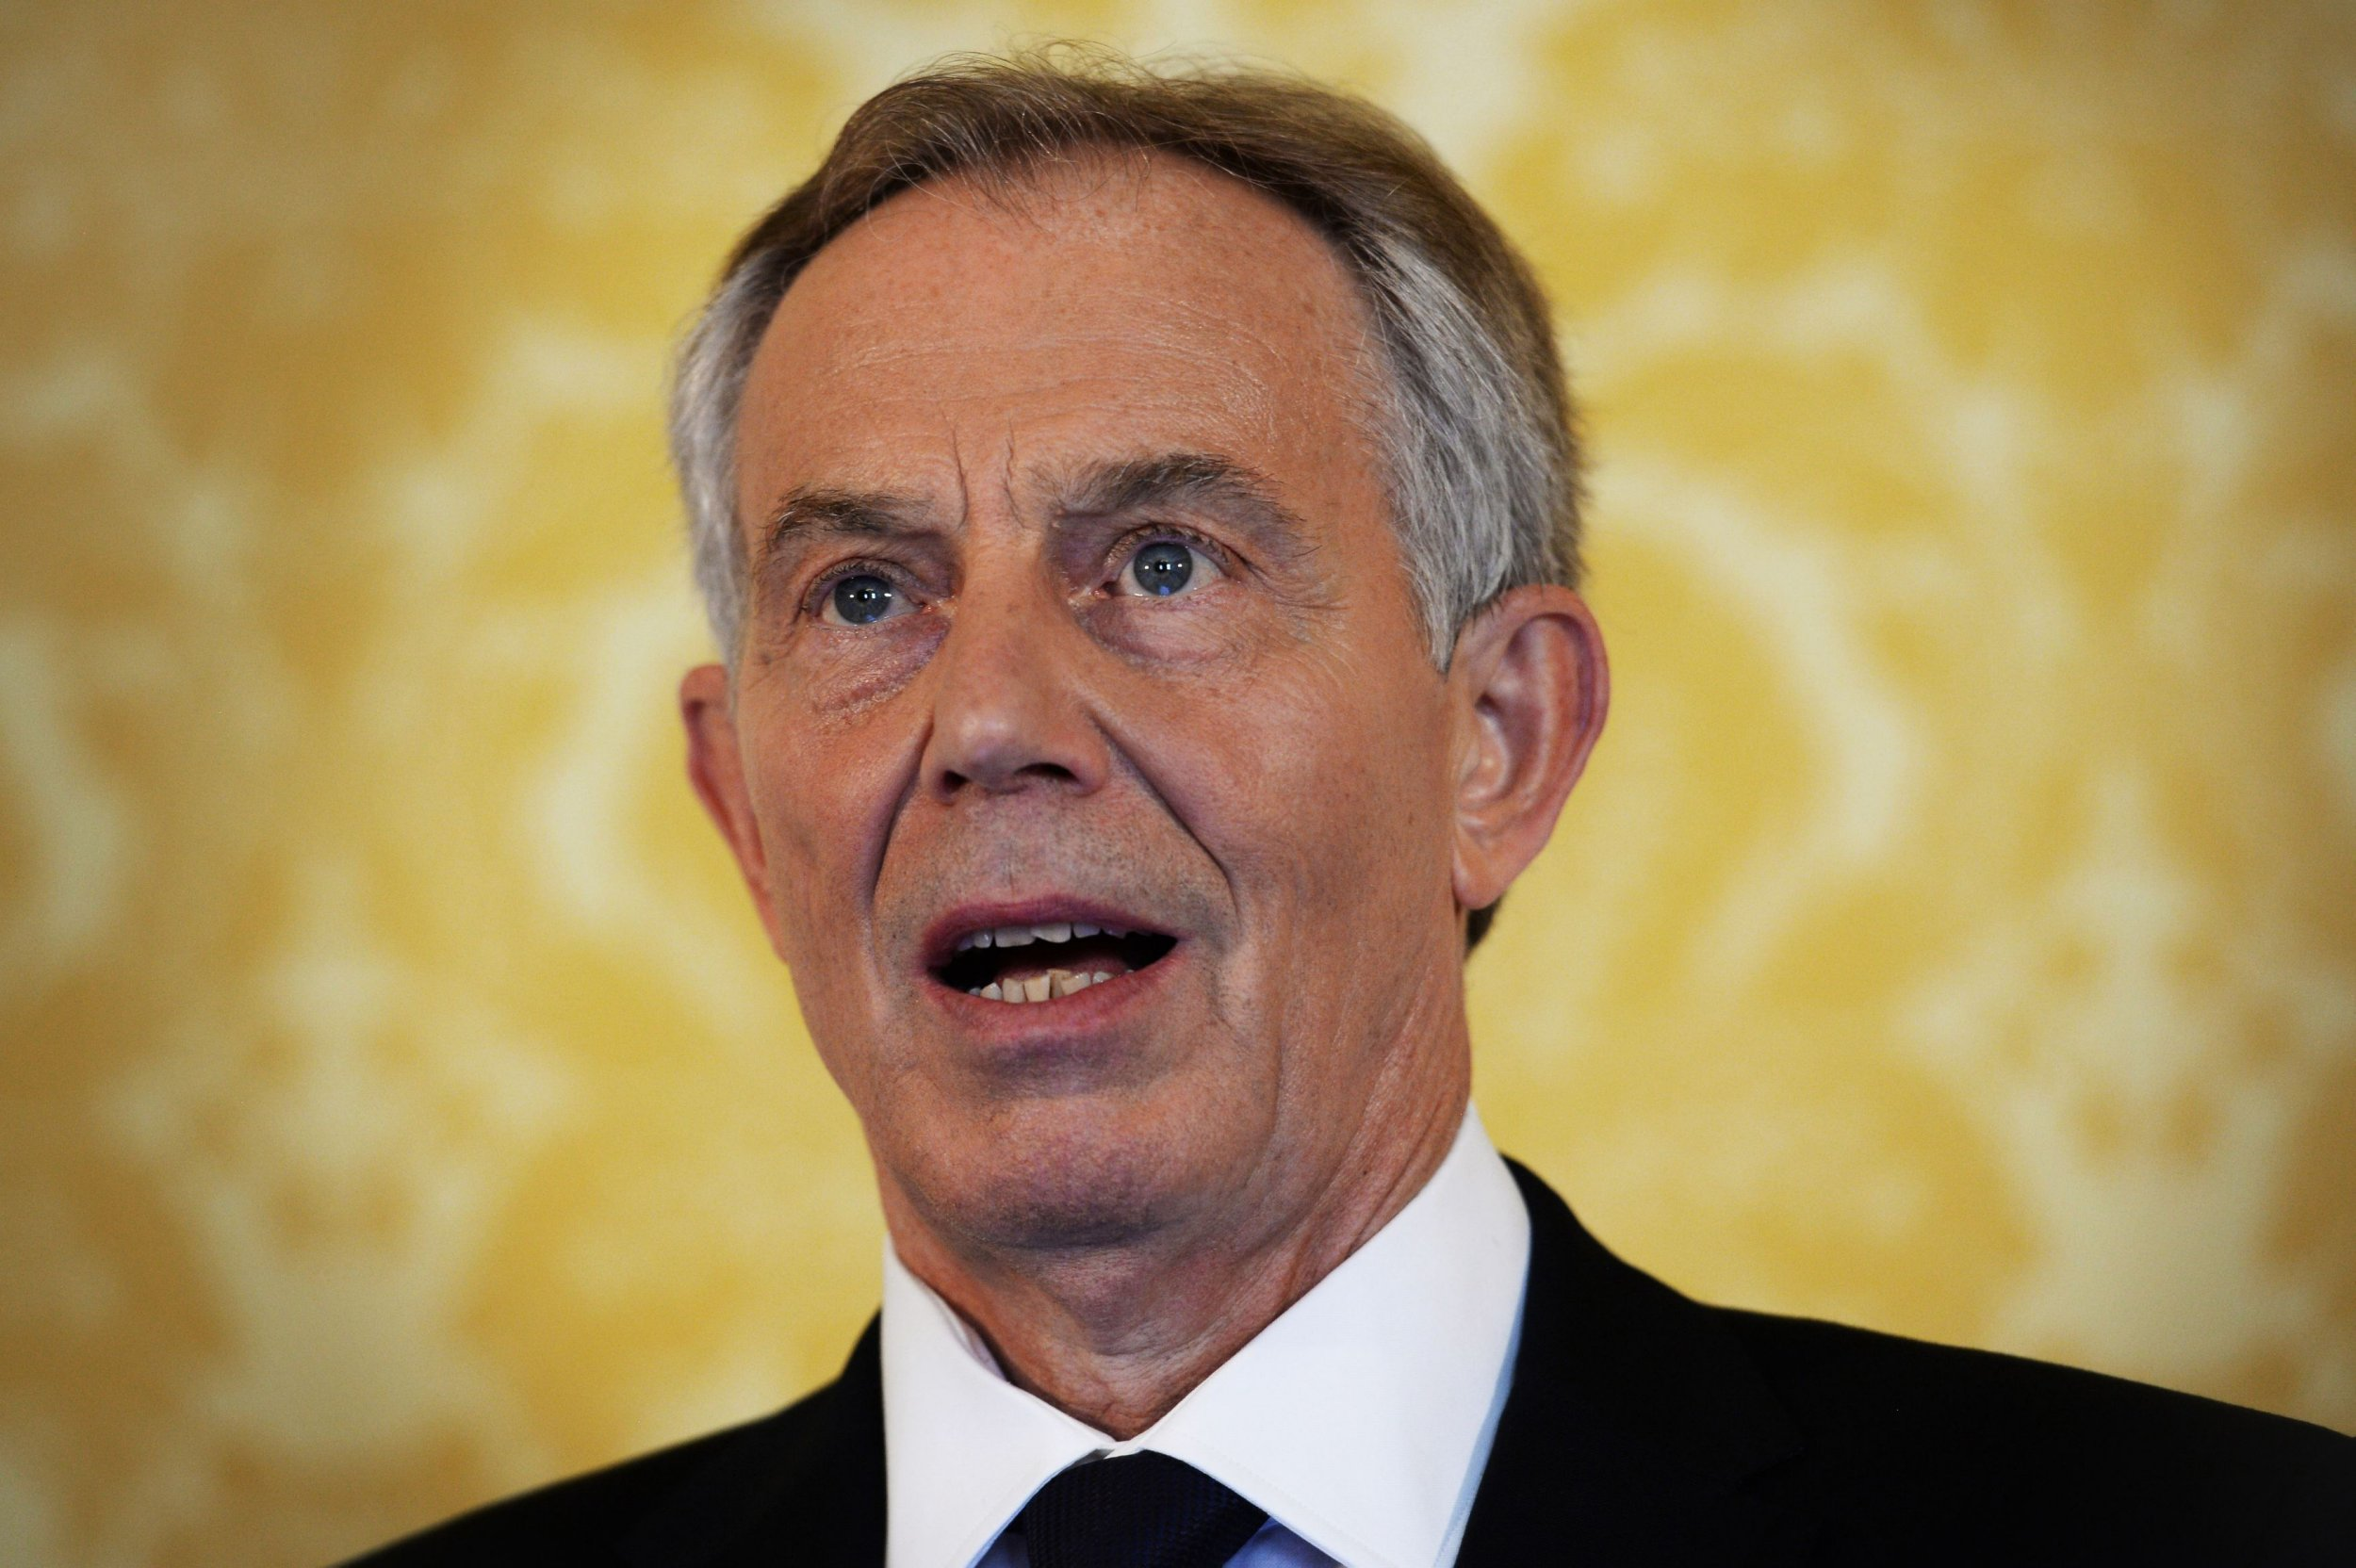 Tony Blair denies claims he is bidding to work for Donald Trump